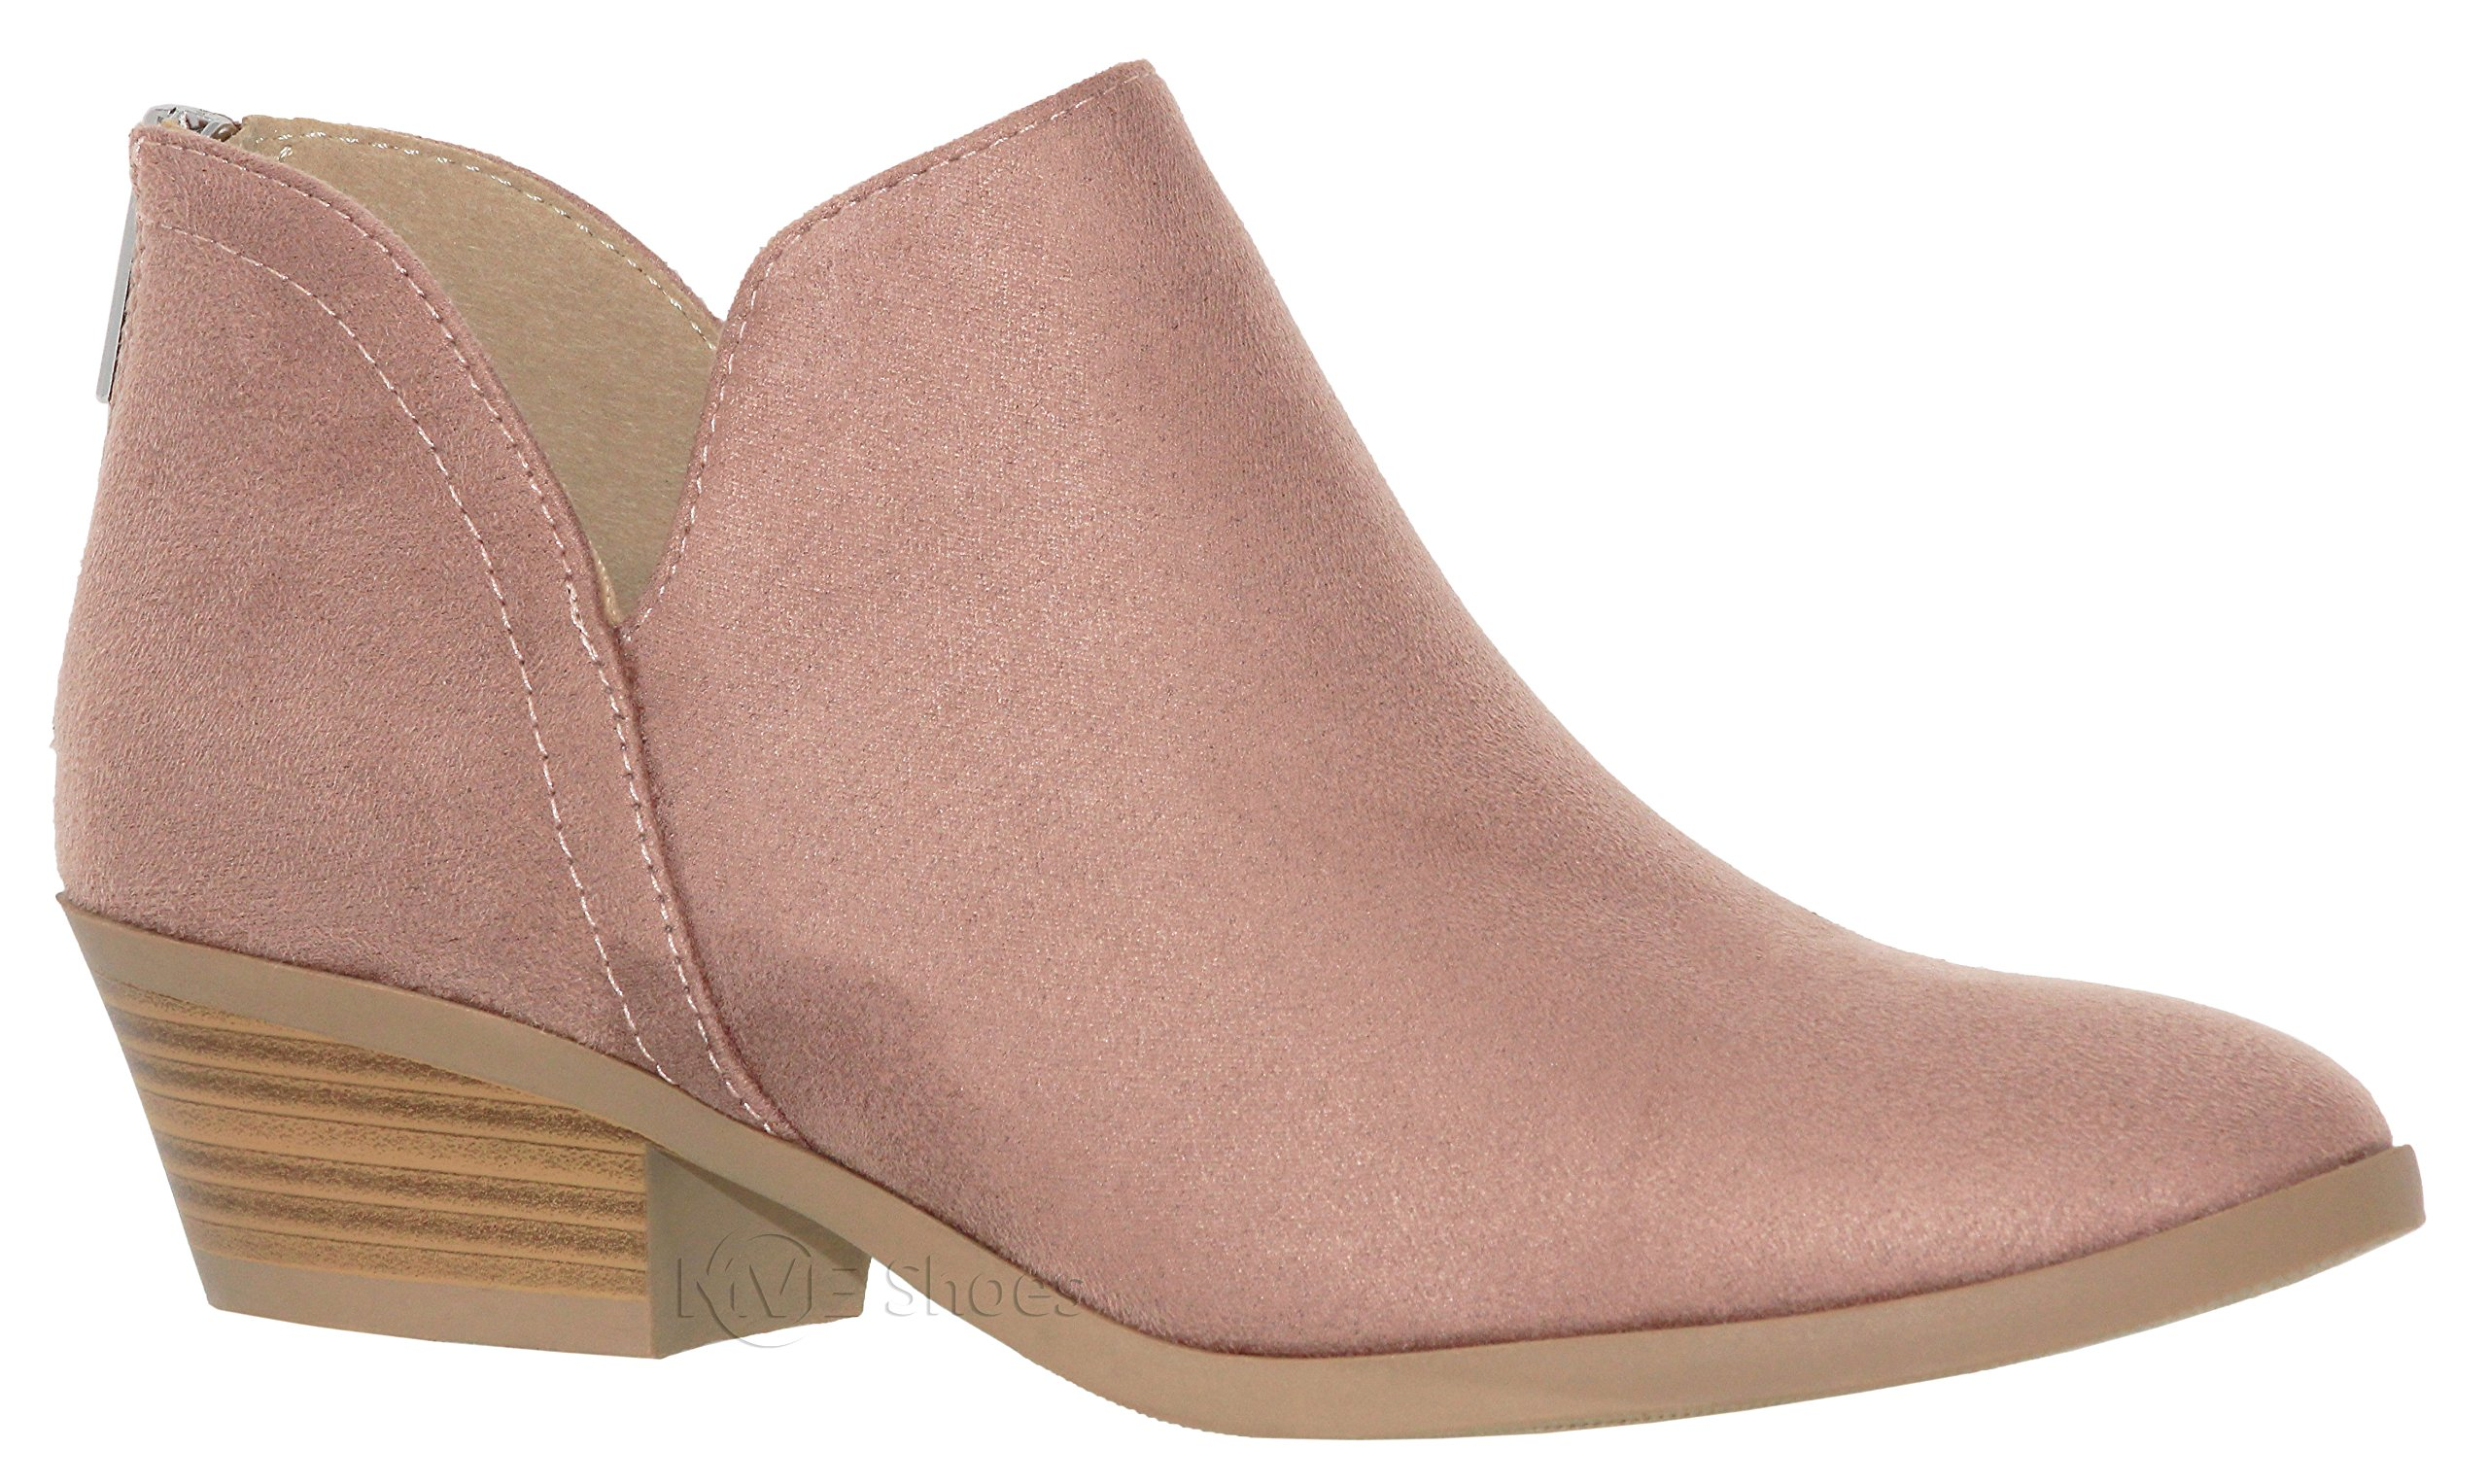 MVE Shoes Cute Western Cowboy Bootie - Womens Pointed Toe Slip On Ankle Boot -Back Zip up Low Heel, Blush su Size 10